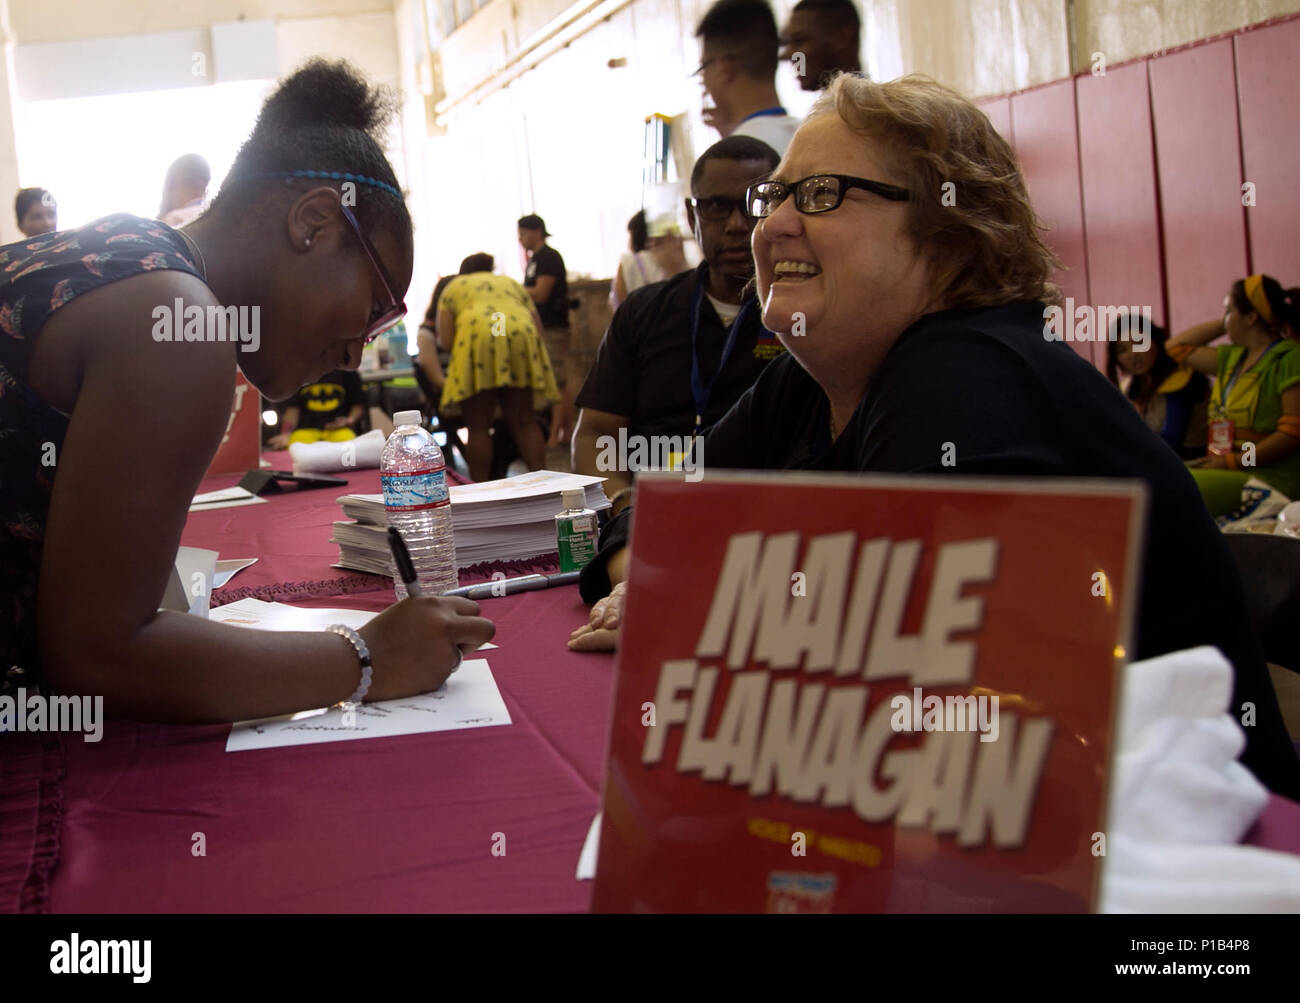 Maile Flanagan socializes with fans while signing autographs October 15 during Comic Con on Camp Foster, Okinawa, Japan. Comic Con is an annual gathering of comic book connoisseurs, video gamers, movie fans and artists across the island that participate in featured events such as: Pokémon tournaments, video game showdowns, cosplay and art contests, panel discussion and meet and greets with guest artists and voice actors. Flanagan is best known as the English a voice actor of Naruto, of the hit animated series. (U.S. Marine Corps photo by Cpl. Brittany A. James / Released) - Stock Image